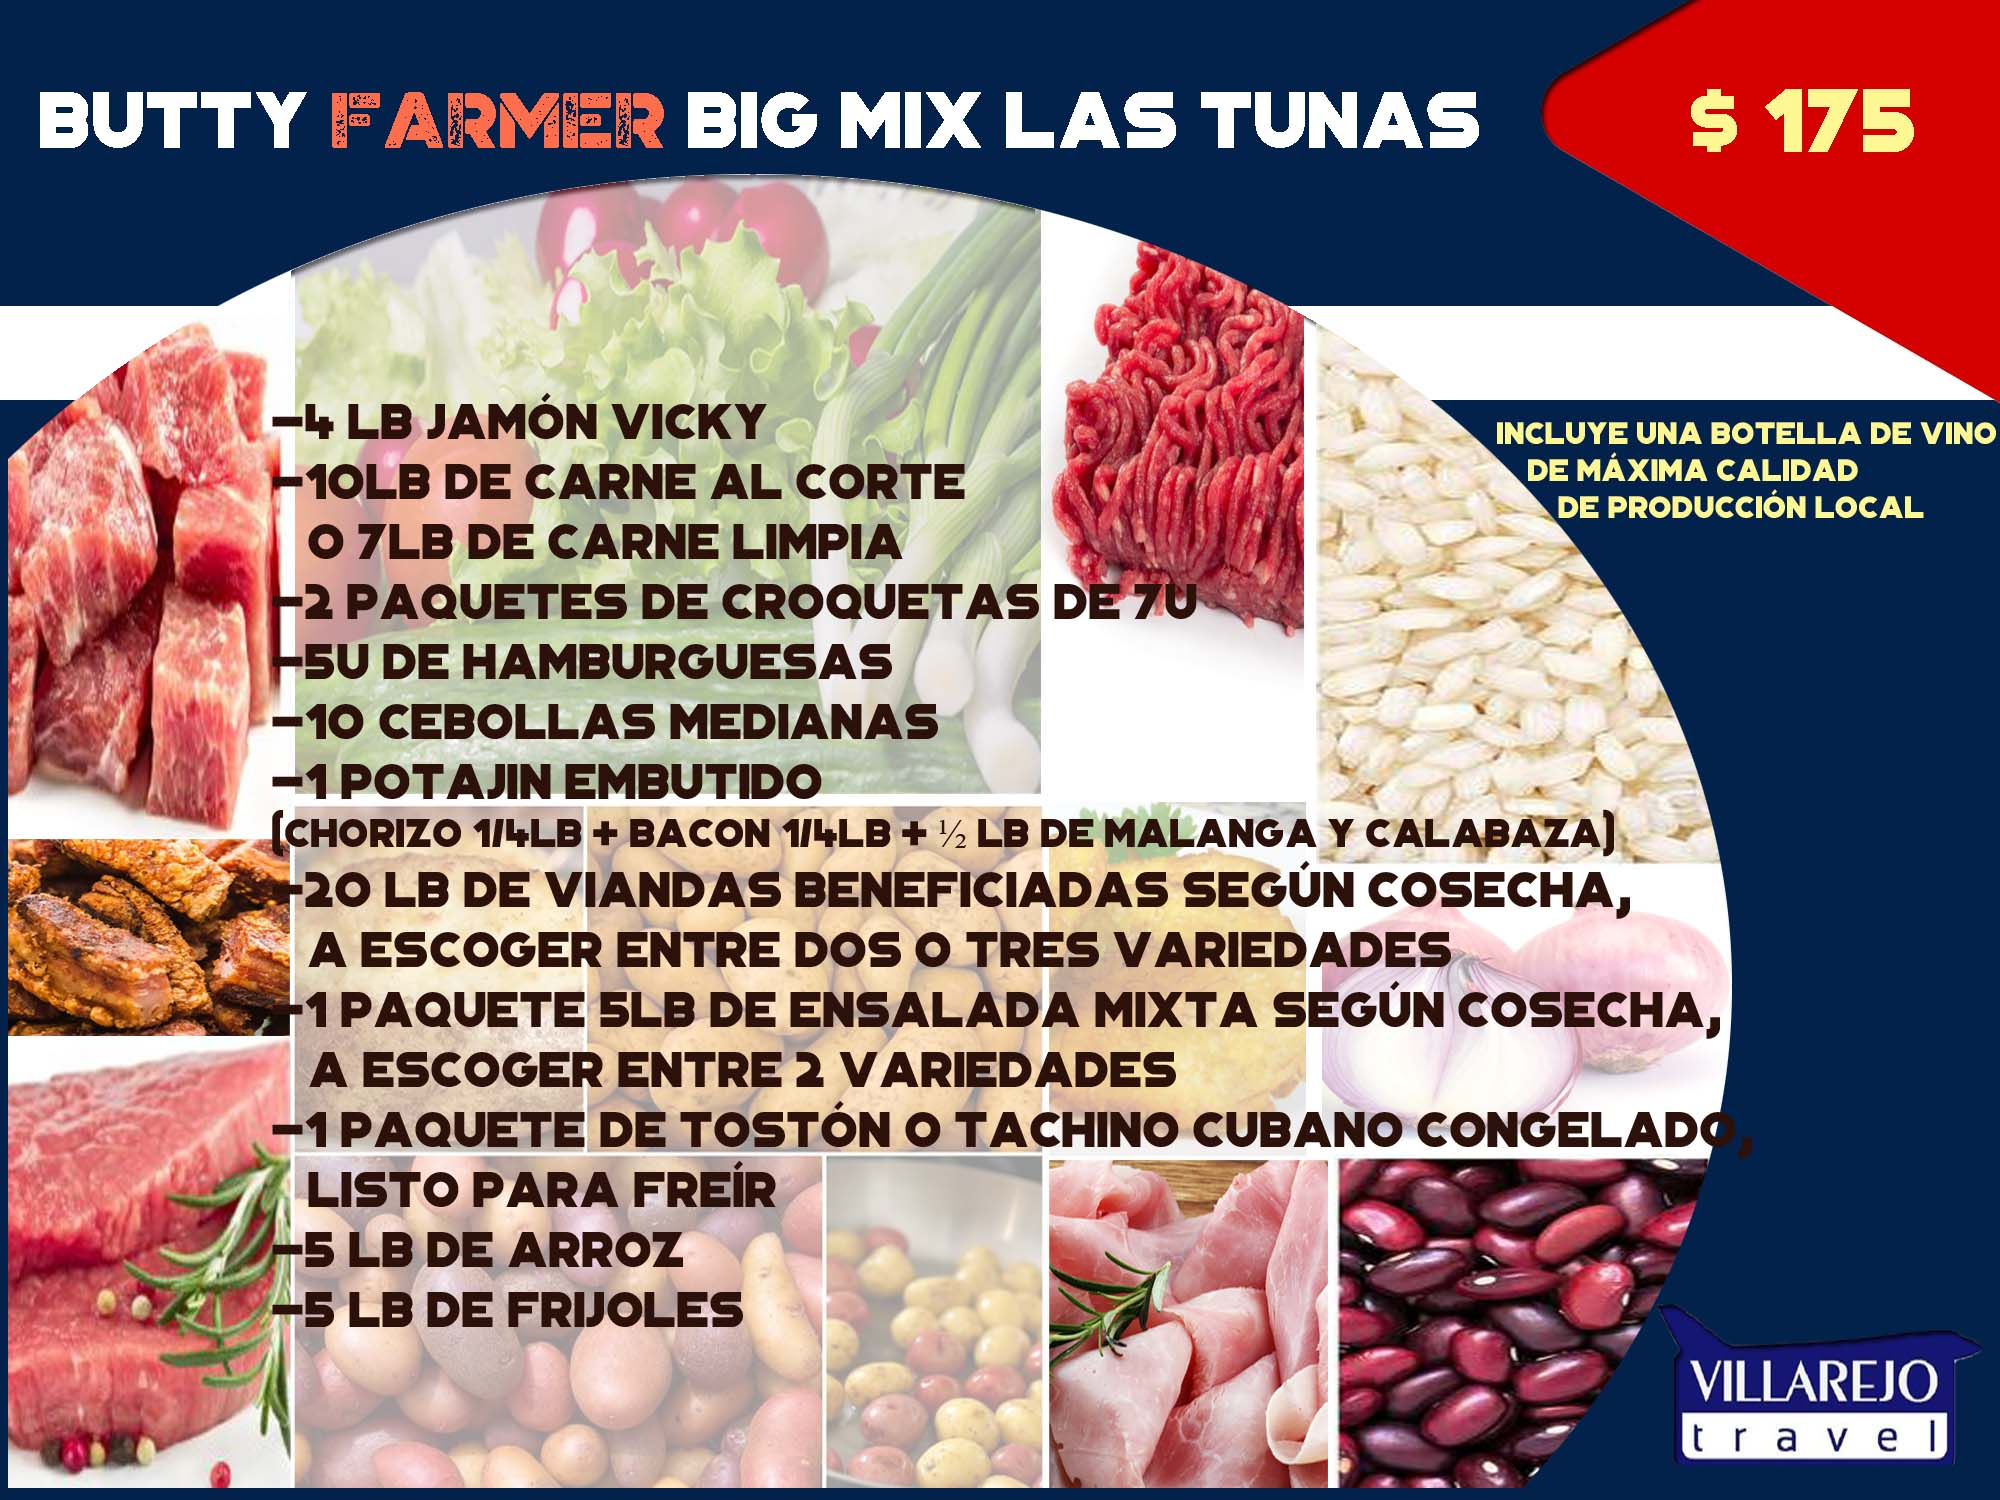 Butty Farmer Big Mix Las Tunas